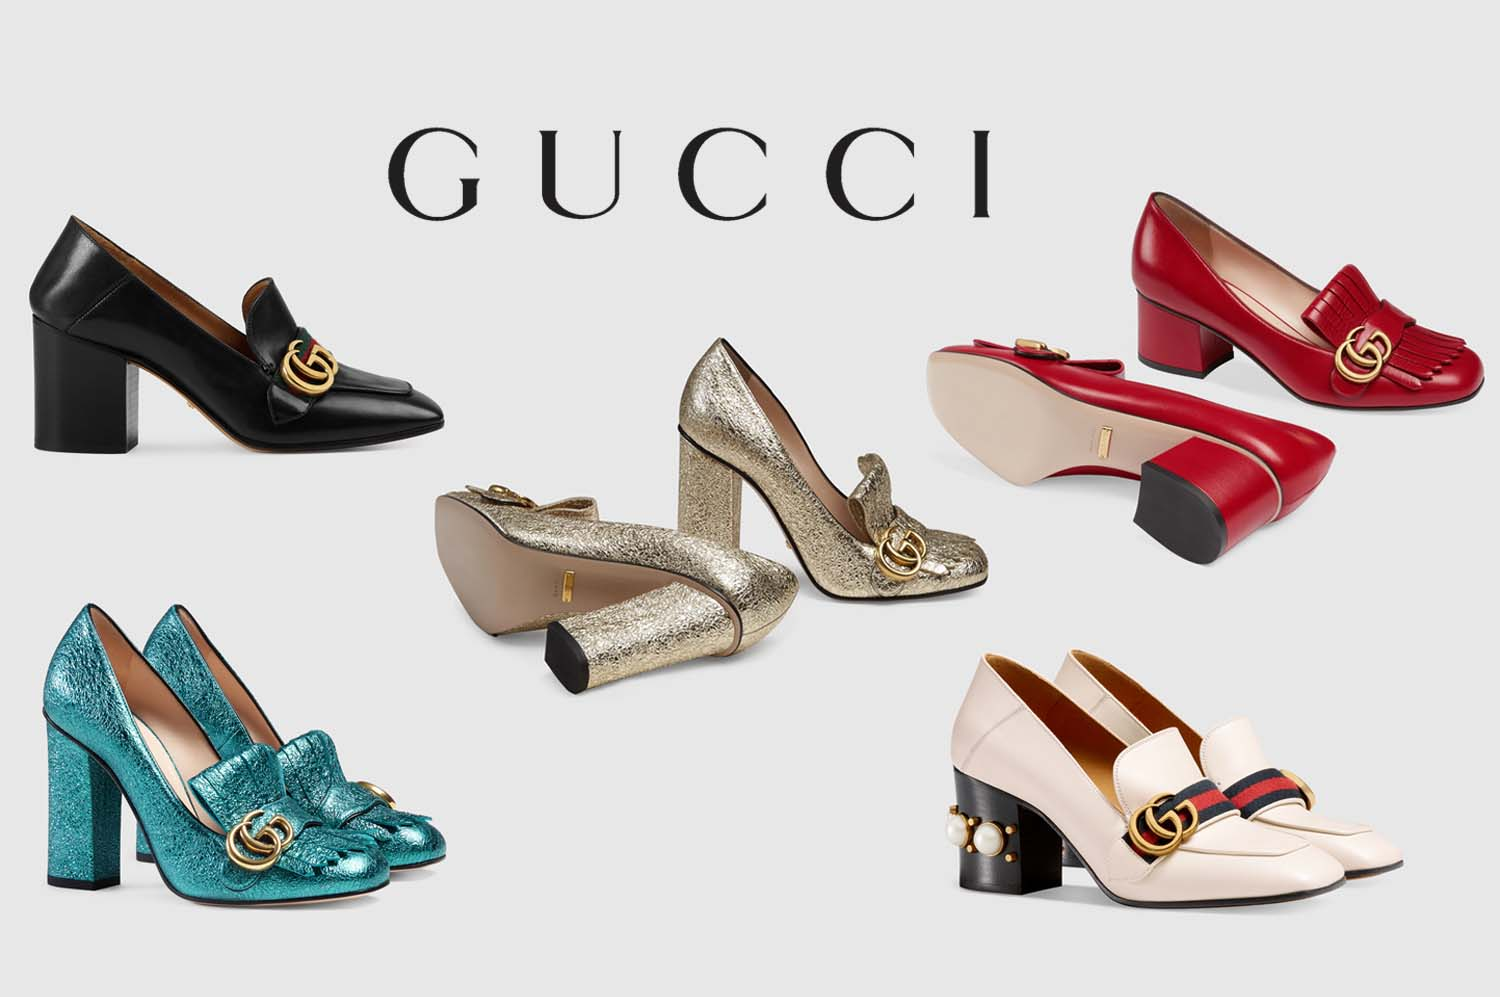 gucci pumps trend fashion